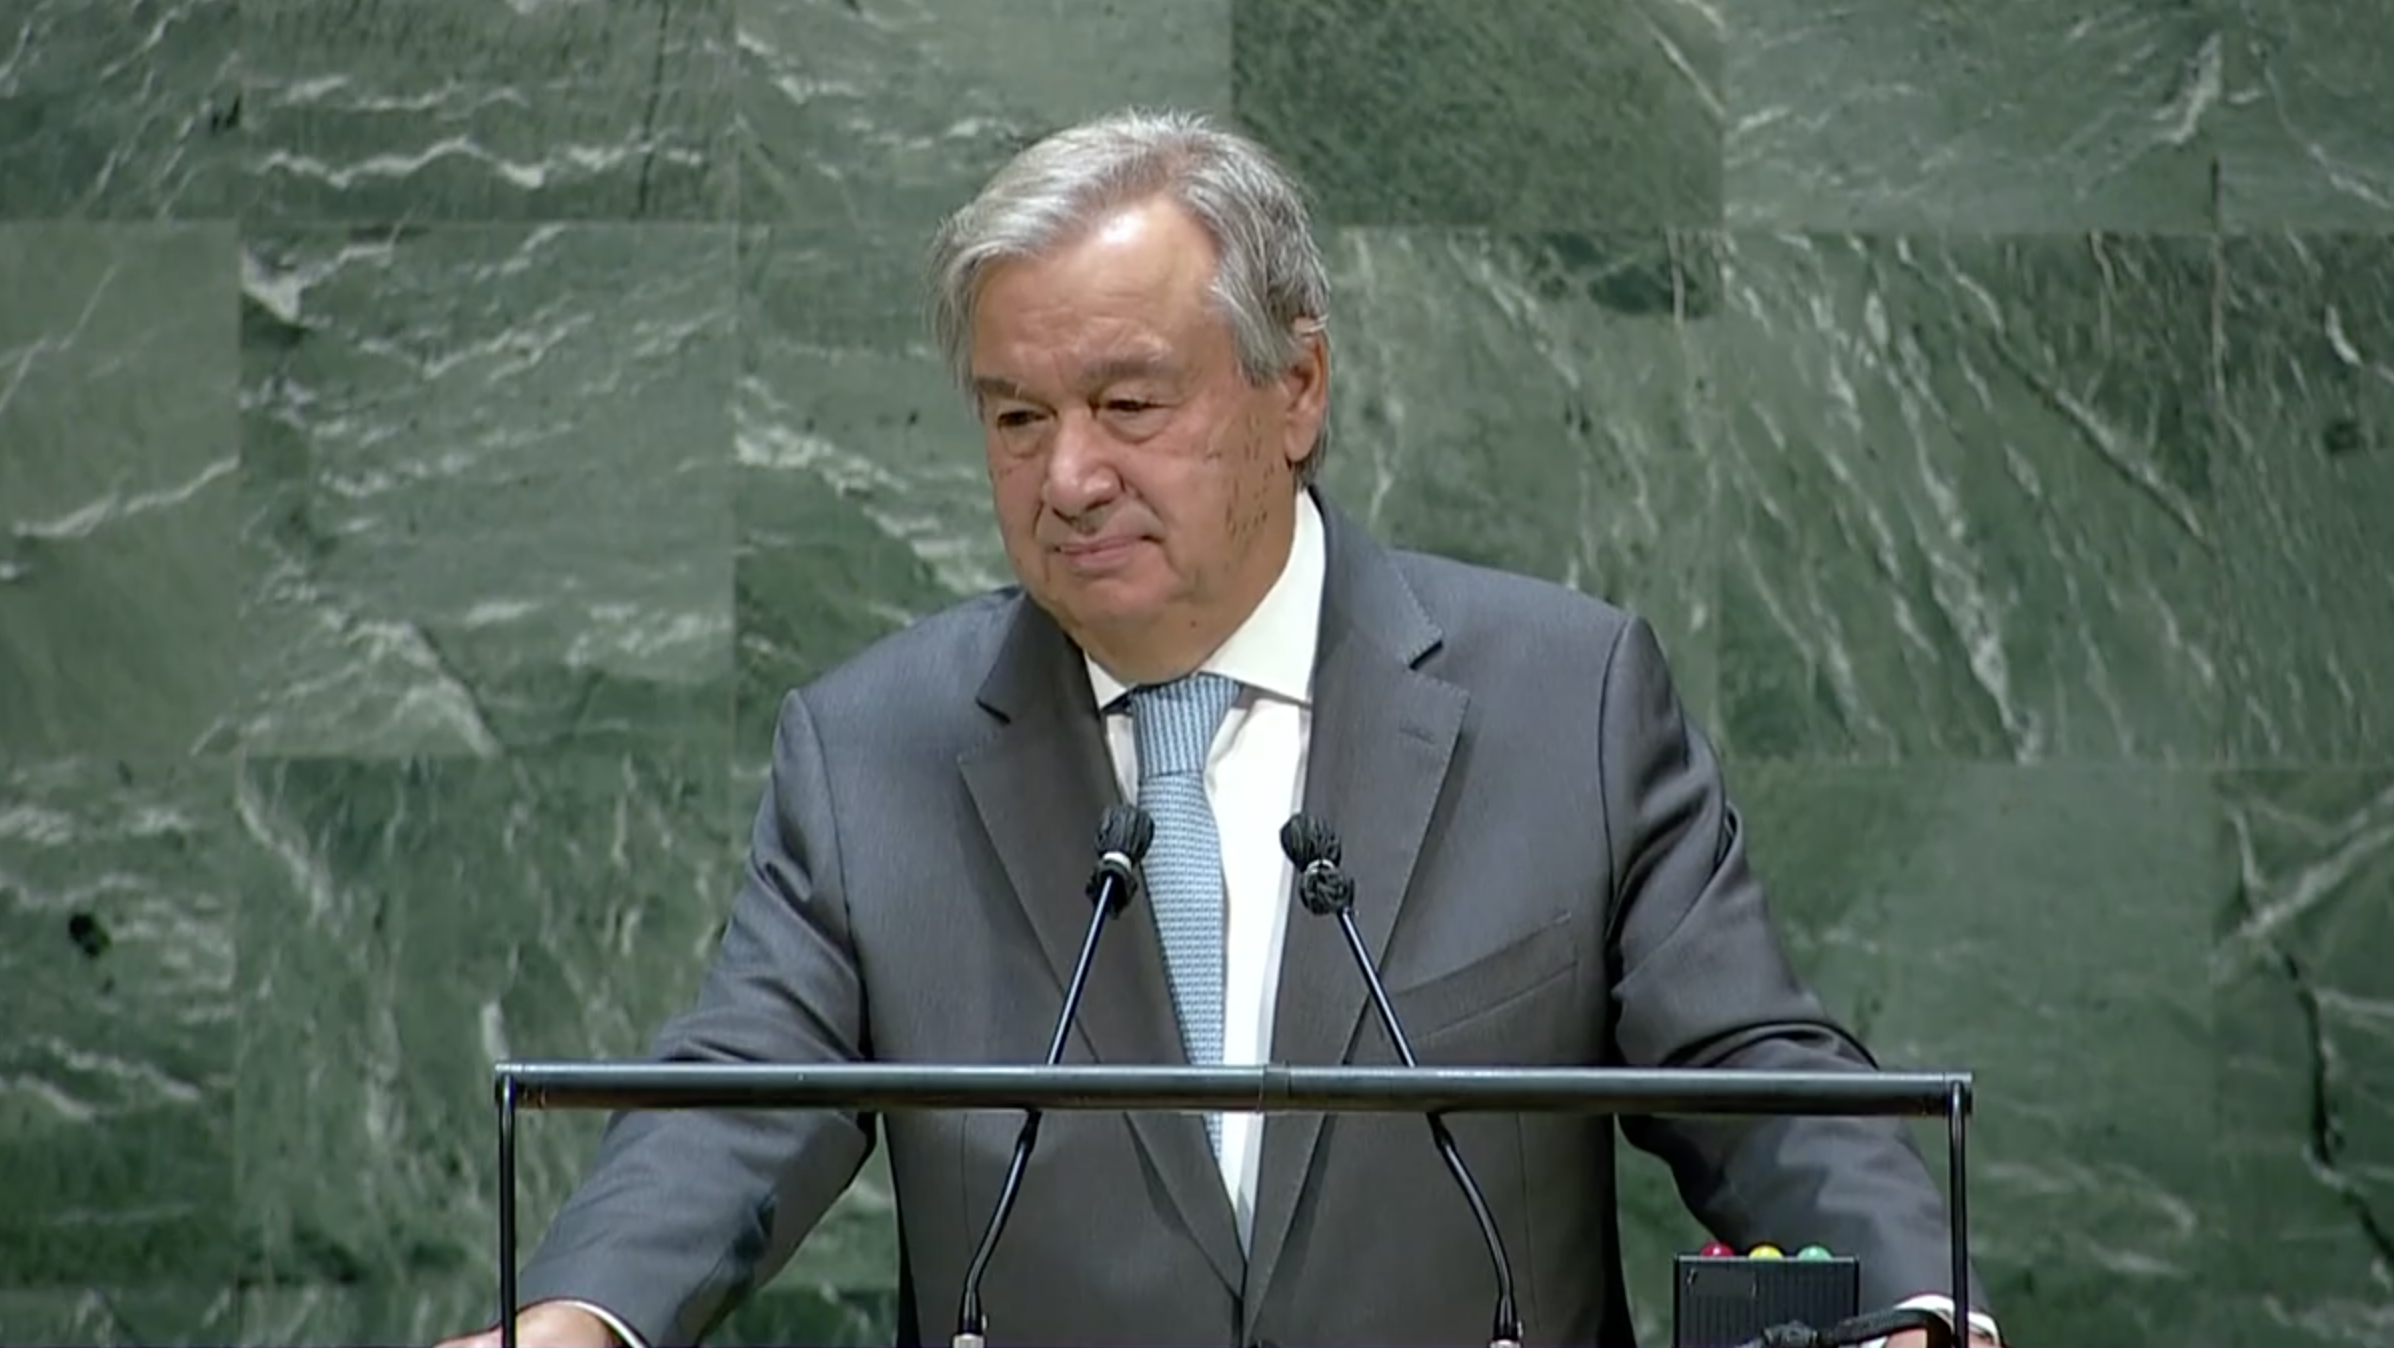 UN chief calls for world governance and multilateralism against crisis